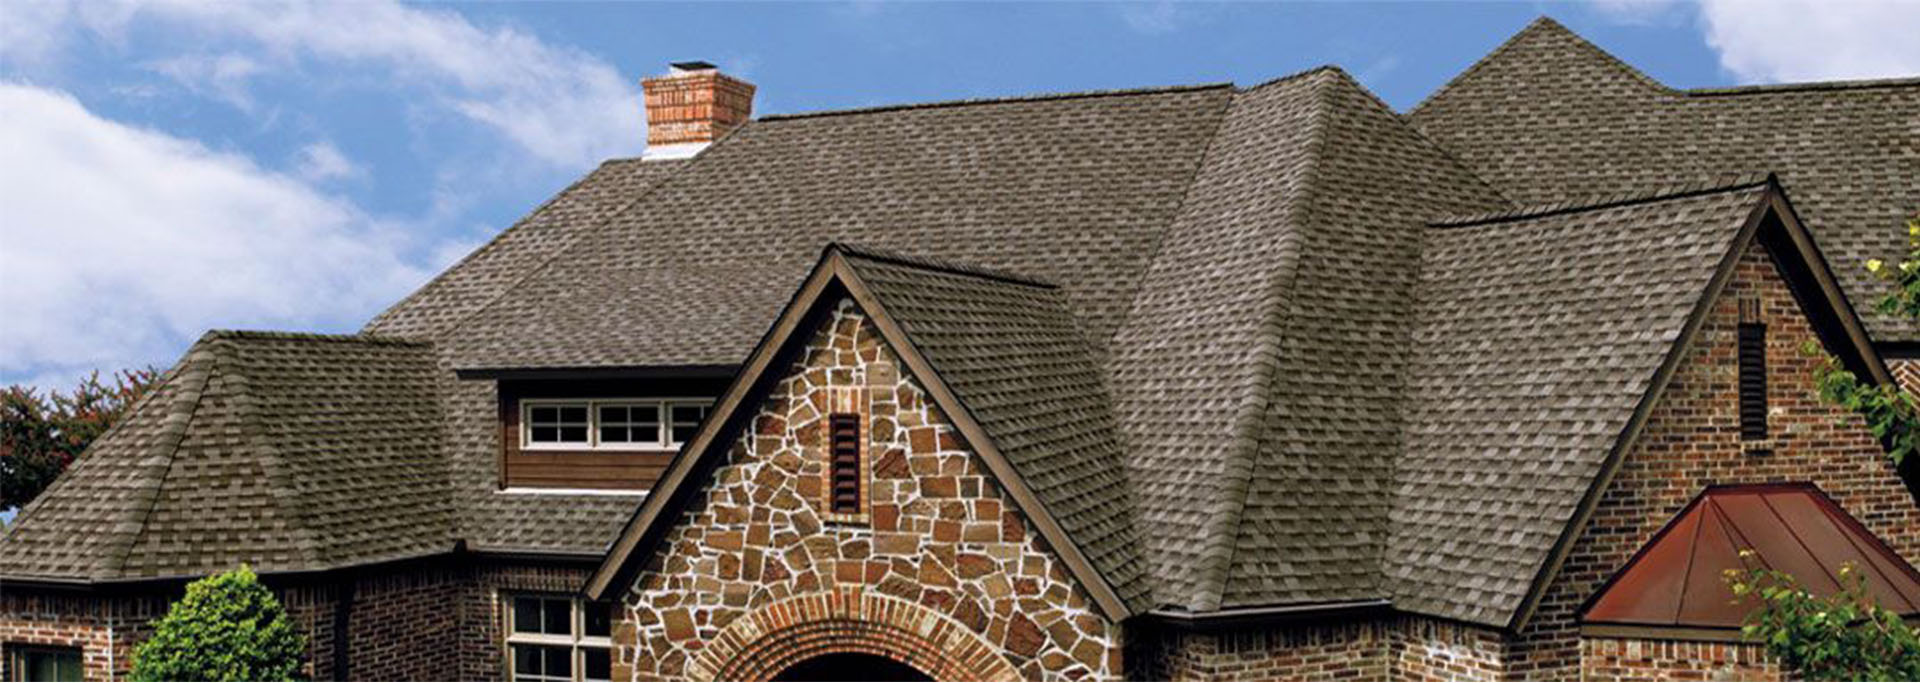 Roofing Company, Deck Builder and Gutter Company